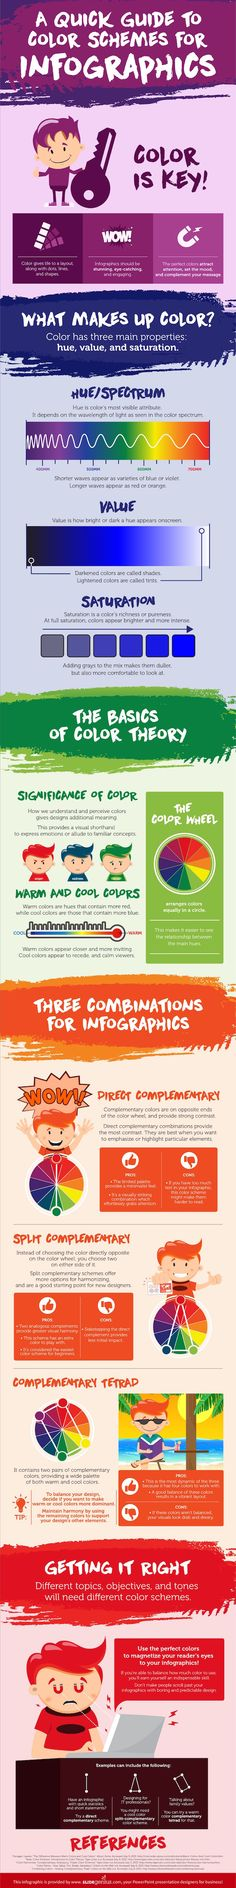 A Quick Guide On Using Color Schemes To Create Eye-Catching Infographics - DesignTAXI.com